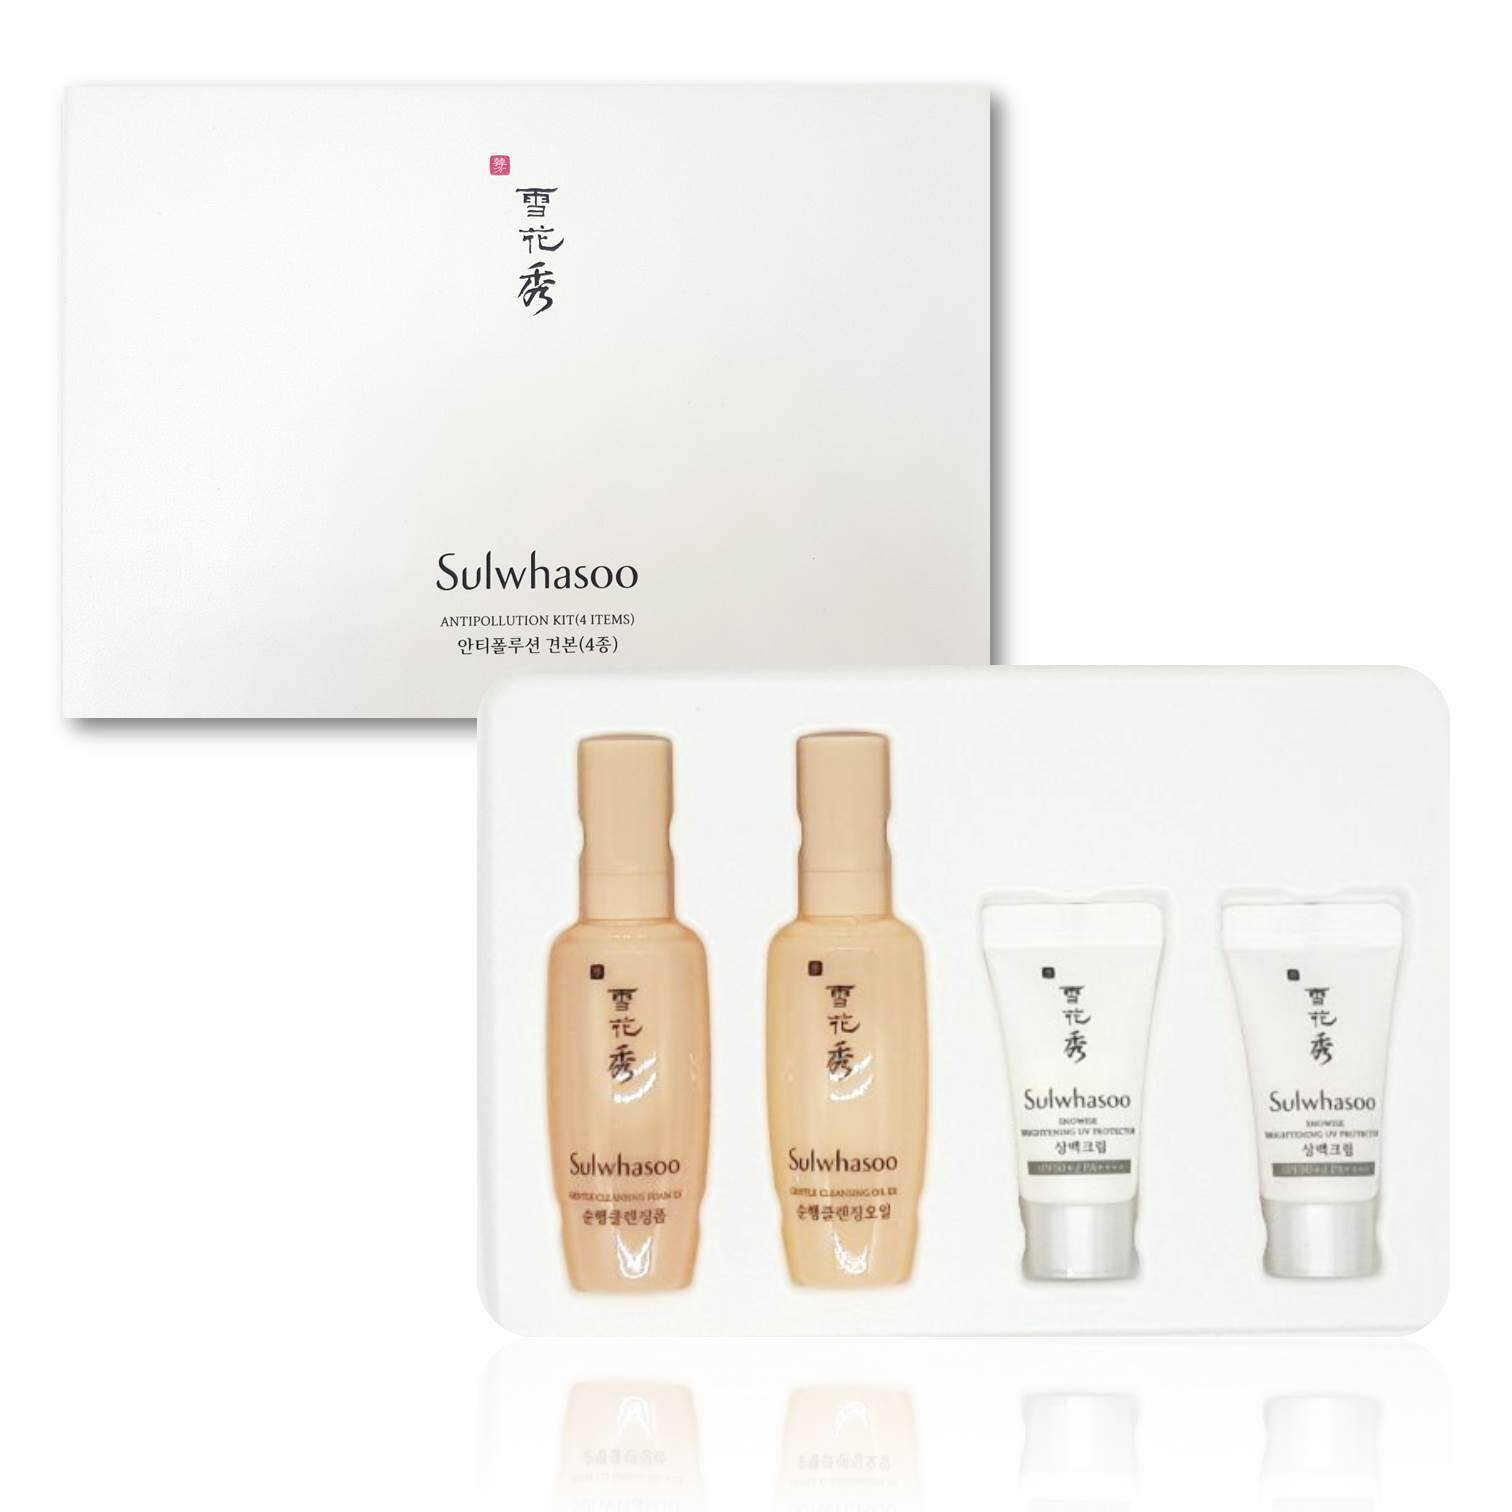 Sell Sulwhasoo Timetreasure Kit Cheapest Best Quality My Store Time Treasure Renovating Cream Ex 8ml Myr 69